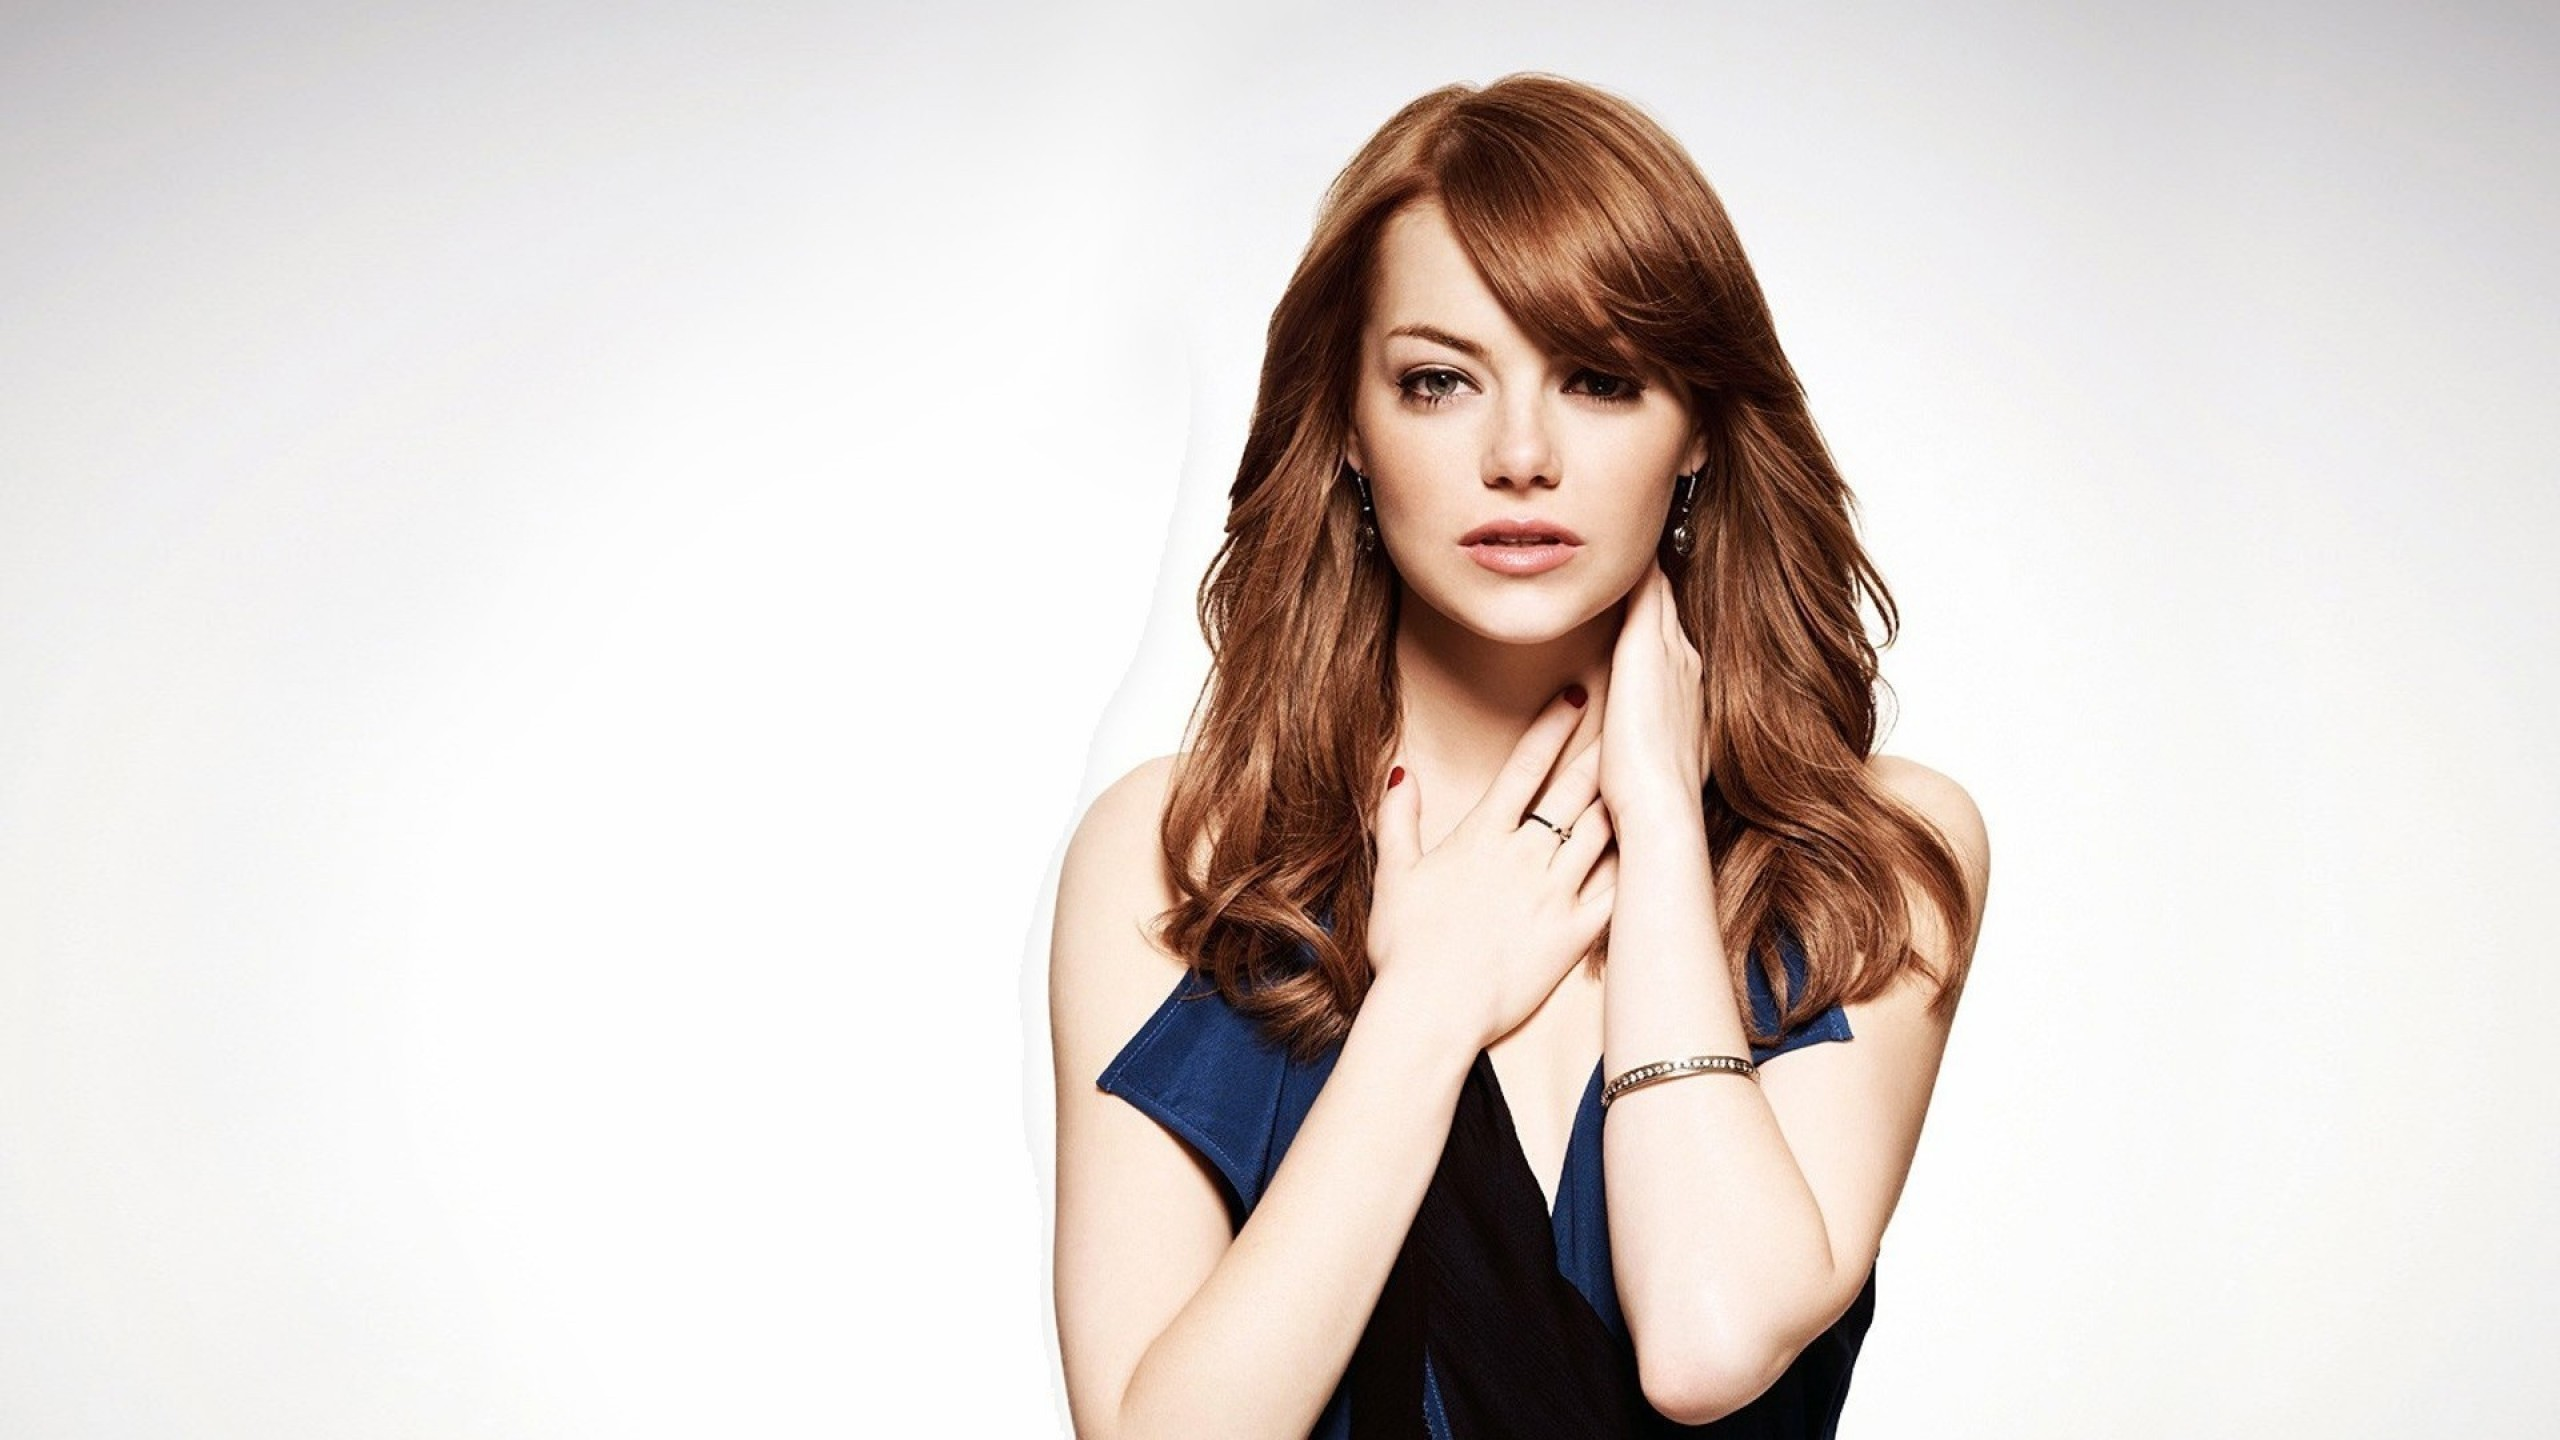 Emma Stone Beautiful Girl